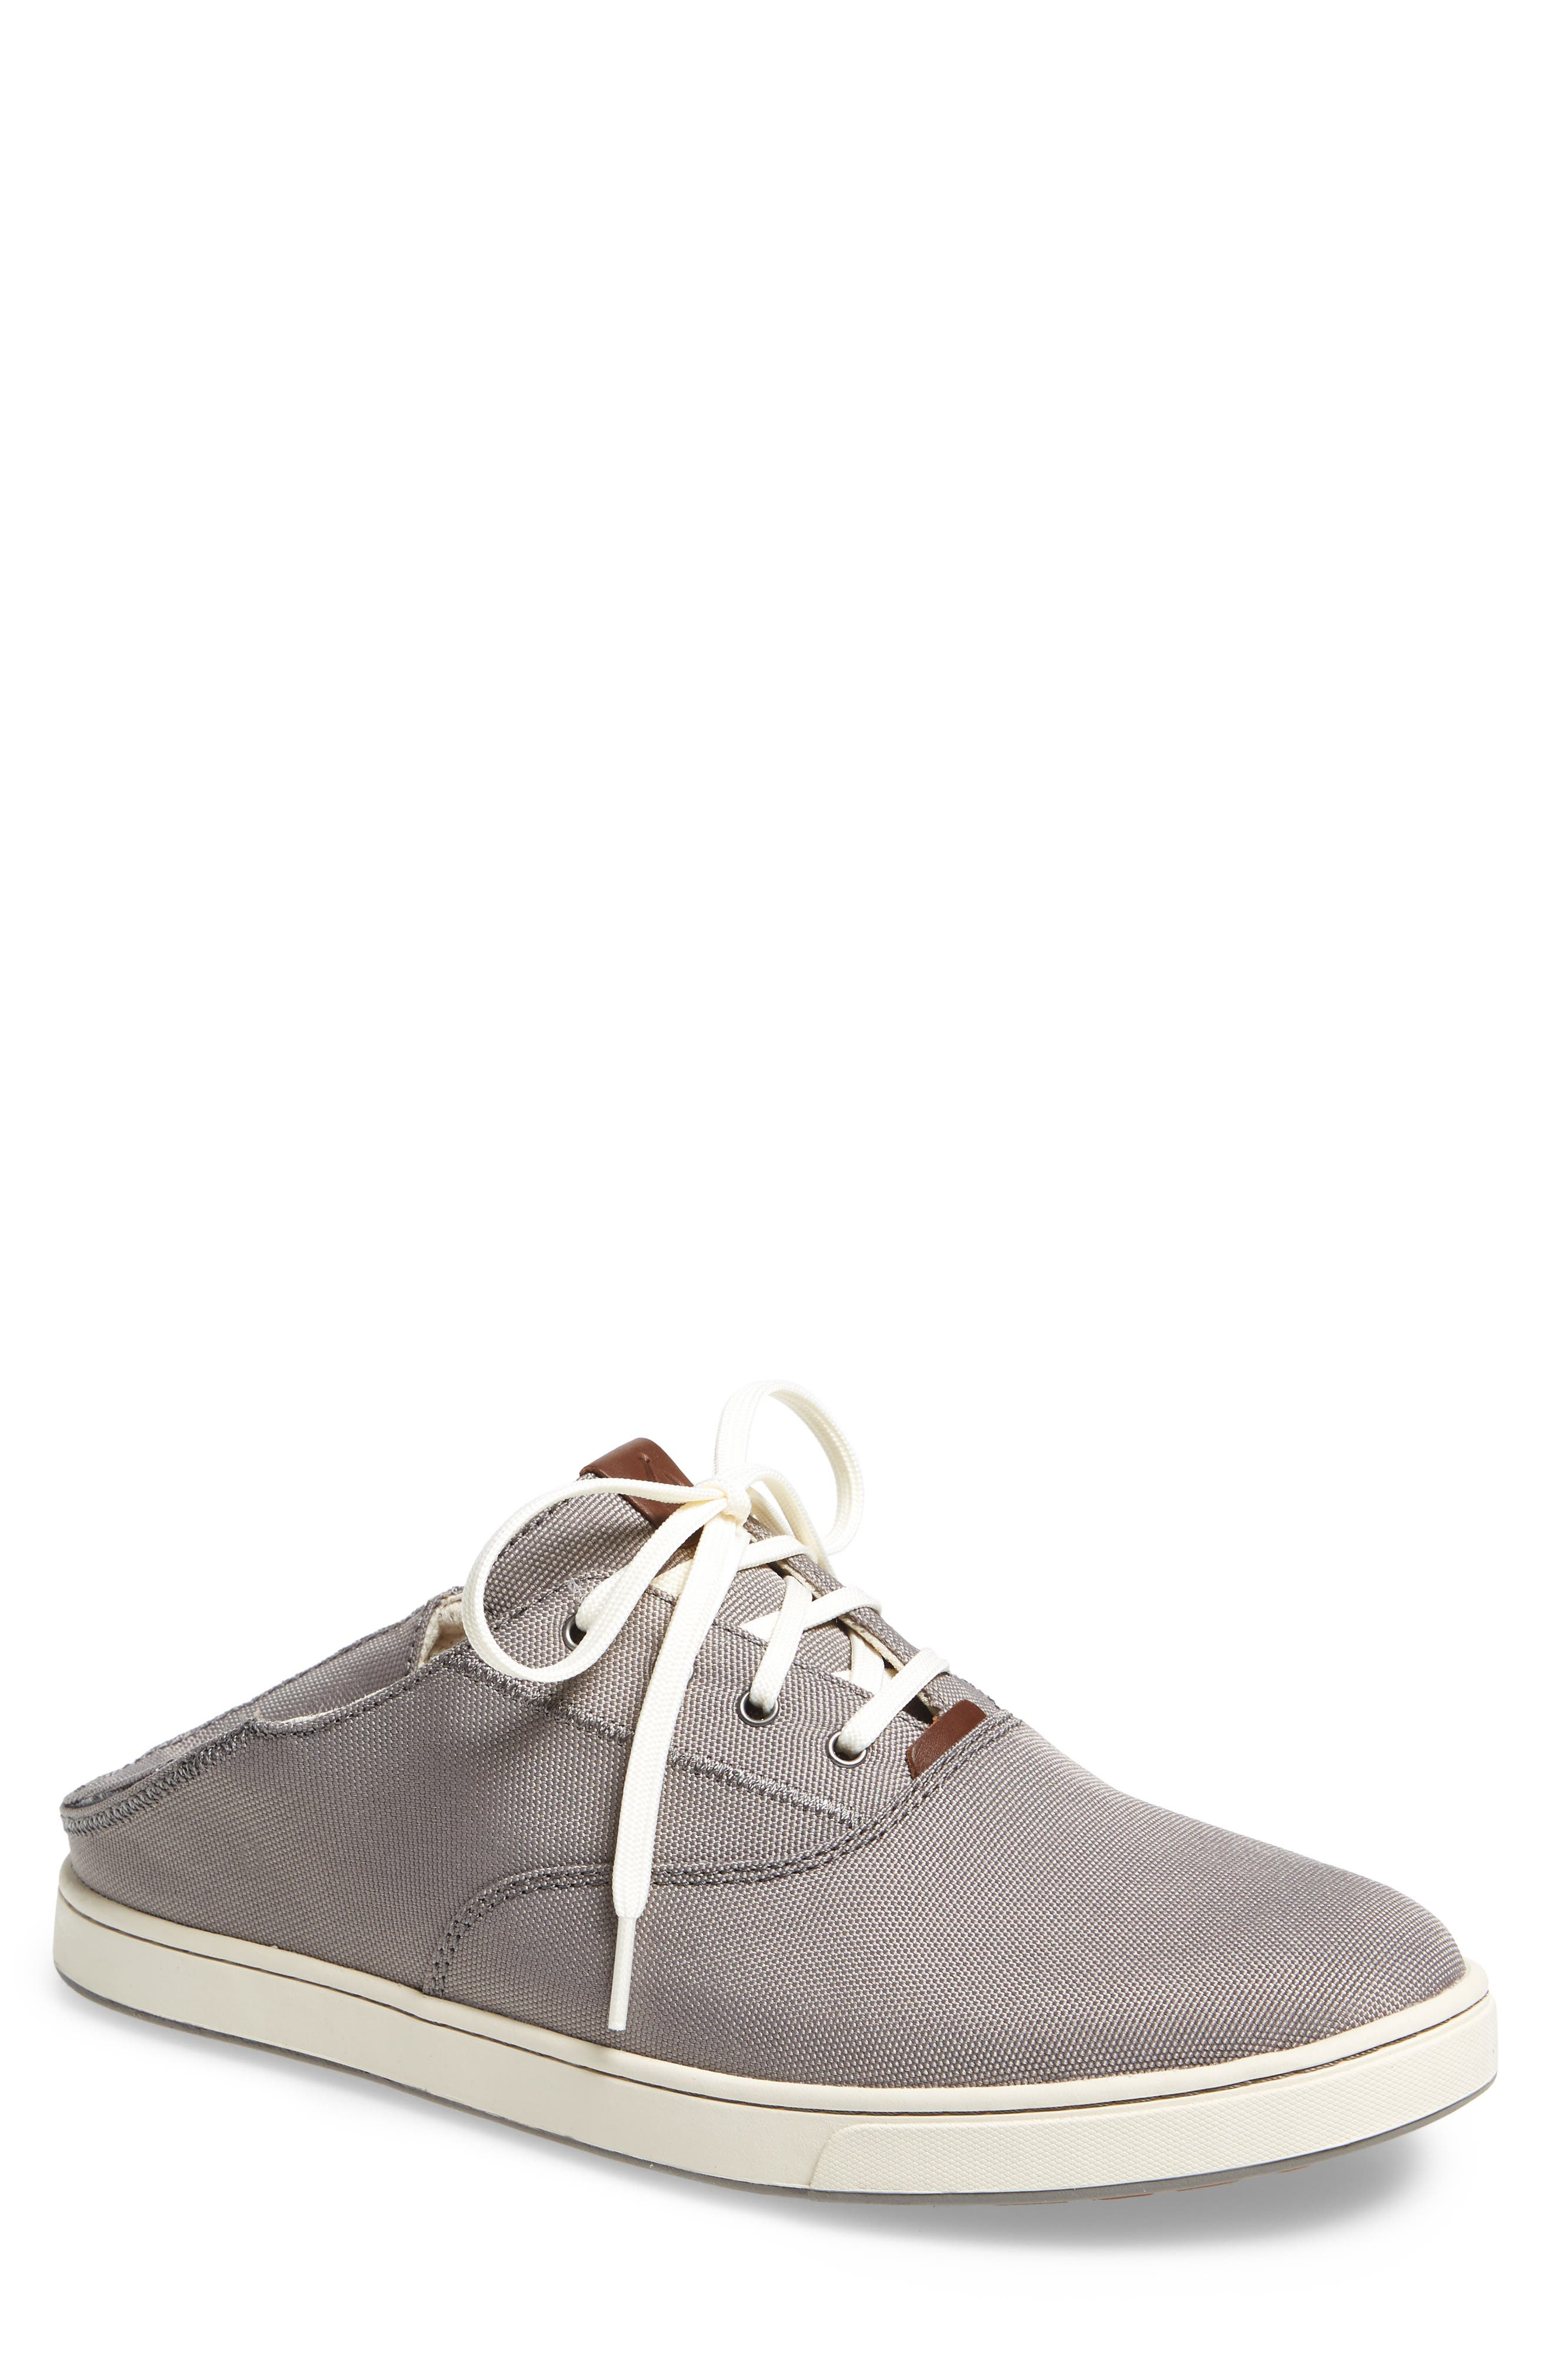 Kahu Collapsible Lace-Up Sneaker,                         Main,                         color, Fog/ Off White